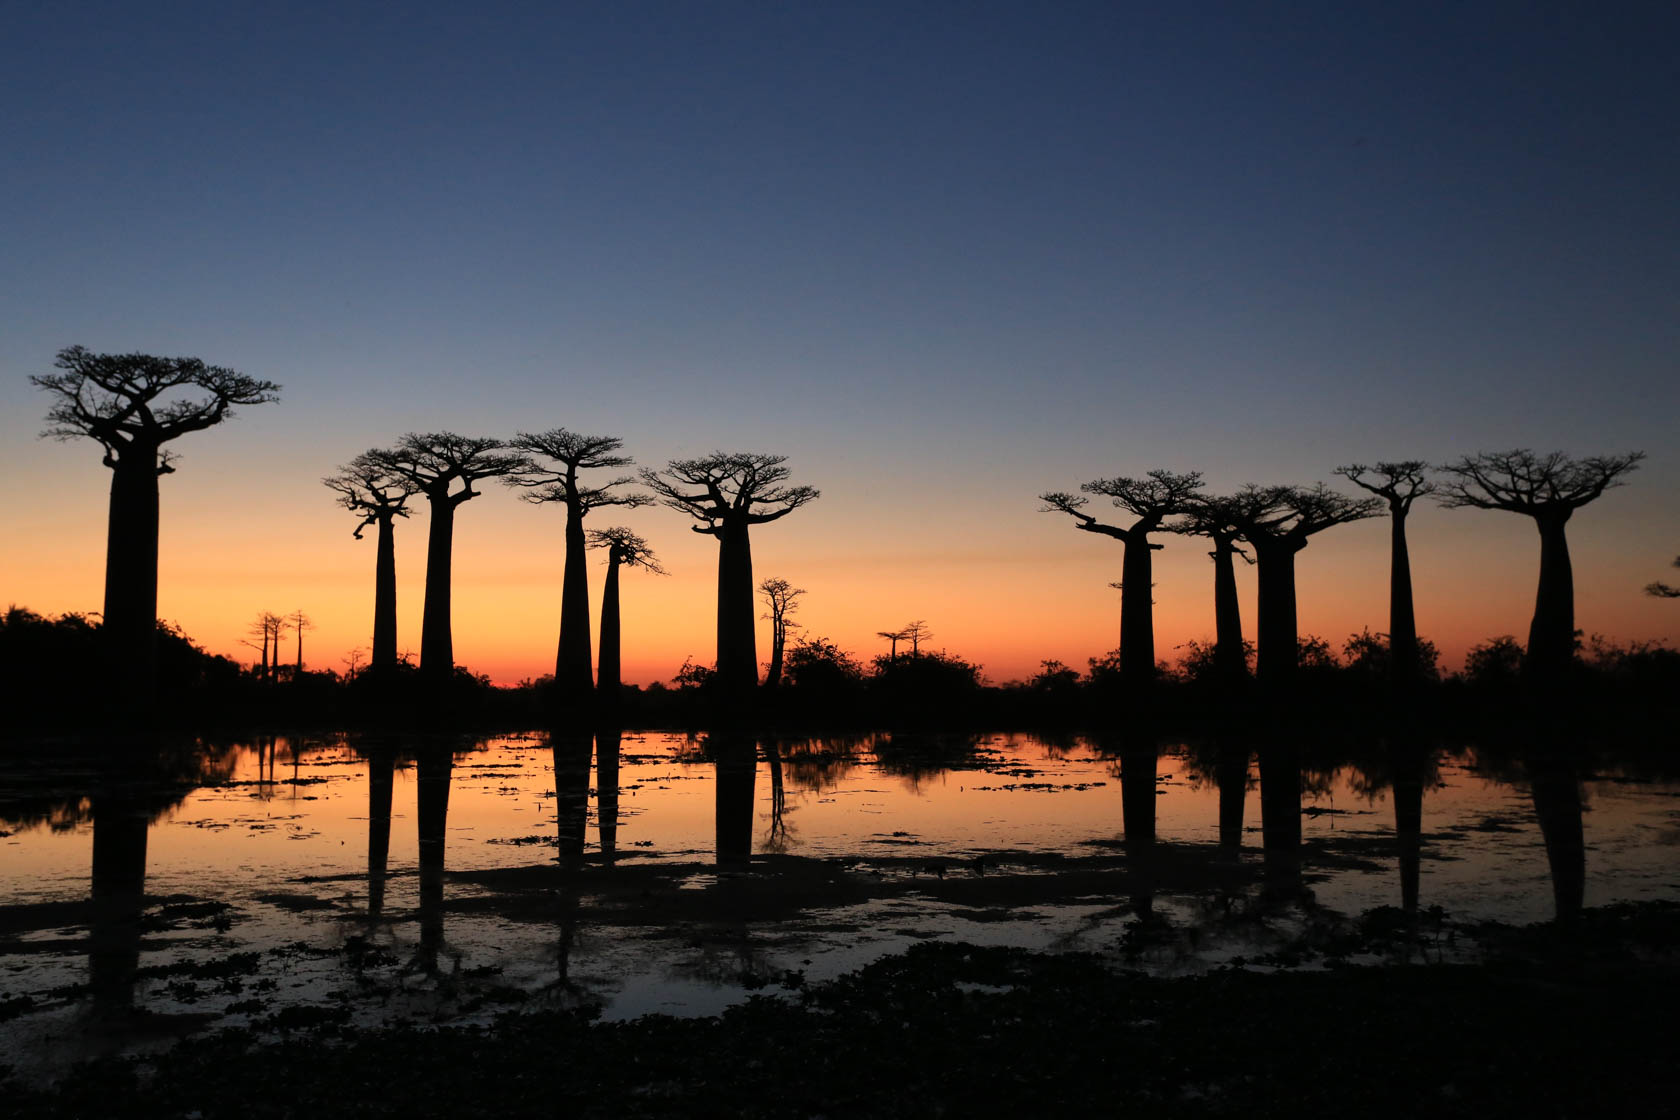 Madagasgar trees at sunset taken with Canon EOS 6D DSLR camera